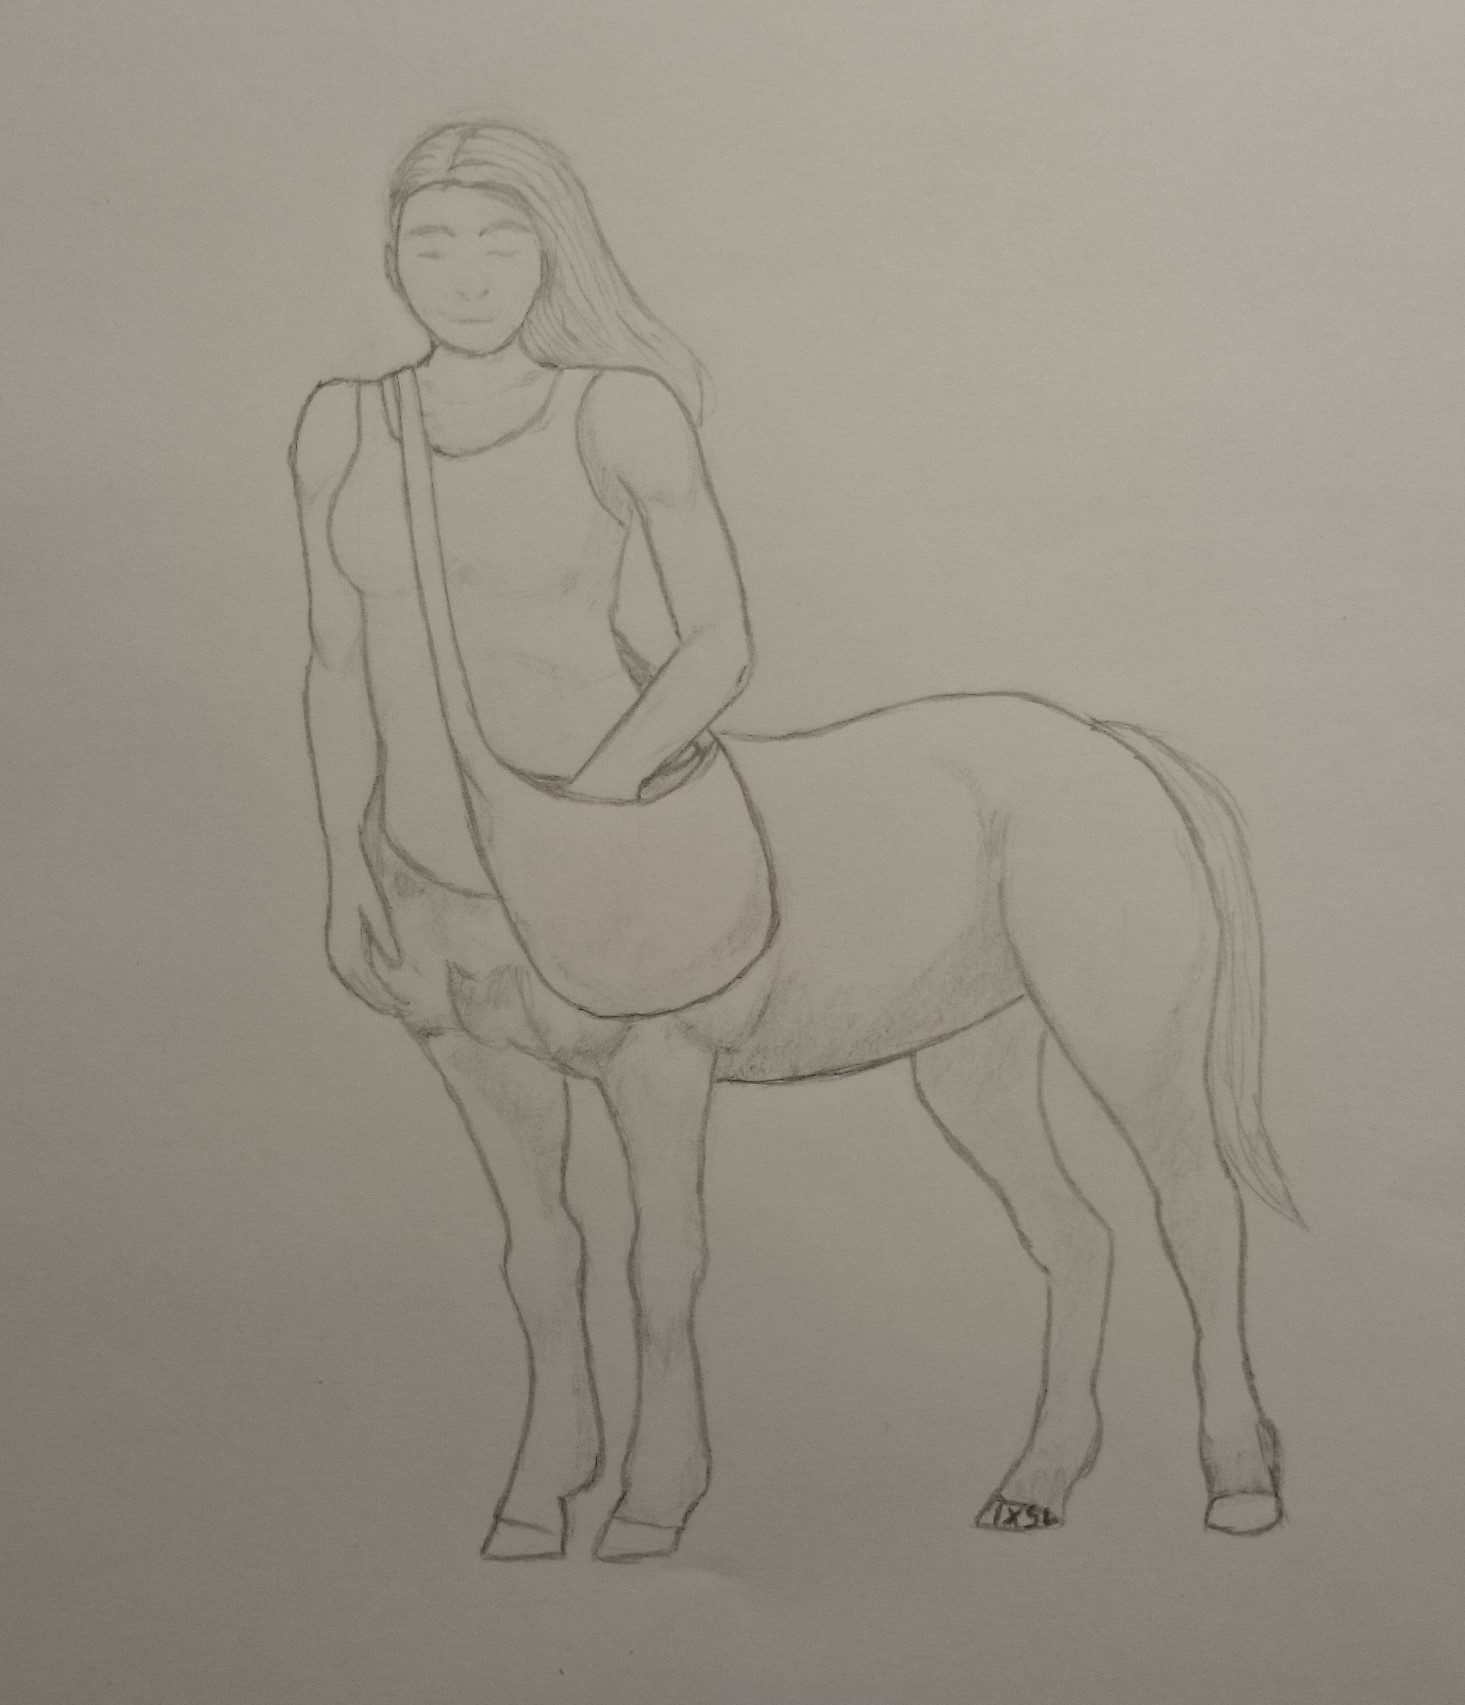 A grey and white rendering of Lerian, featured with a subtle smile on her face. Her straight hair is loose and hanging down to her back, and while one of her hands rests at her side, her other reaches into the simple satchel slung over of chest. Her hind legs (she's a centaur) are muscular and her tail rests calmly as she stands still, possibly deep in thought. By LM.